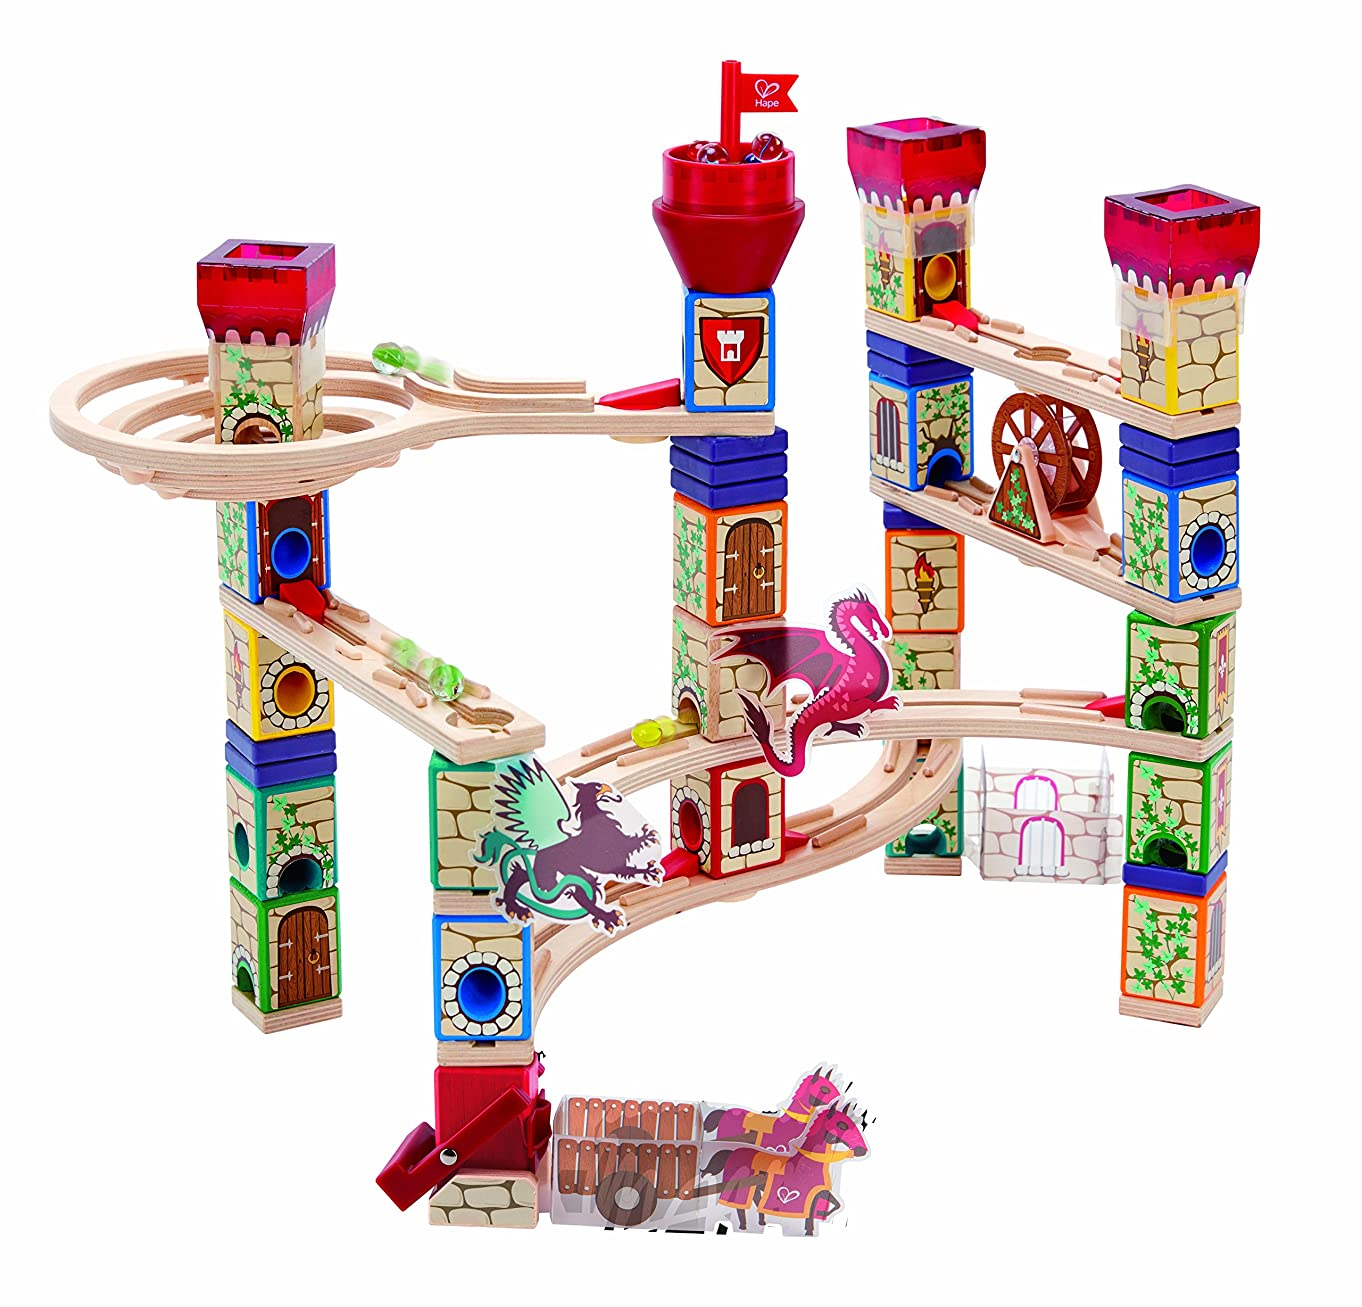 Hape Quadrilla Wooden Marble Run Construction Medieval Quest Set, 212Piece